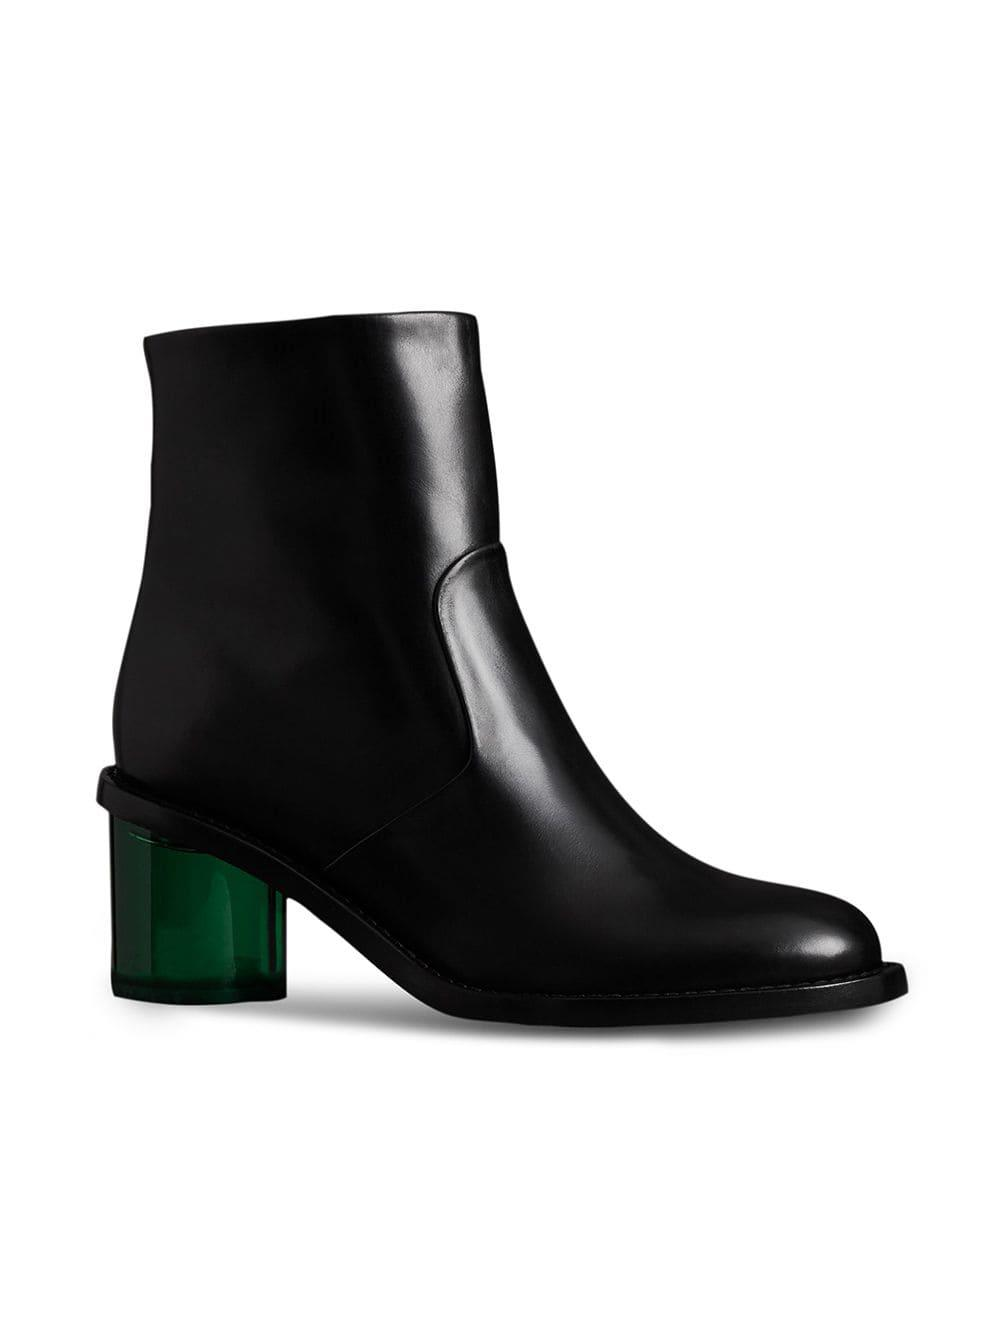 723bf1b2bec1 Burberry Two-tone Leather Block-heel Boots in Black - Lyst